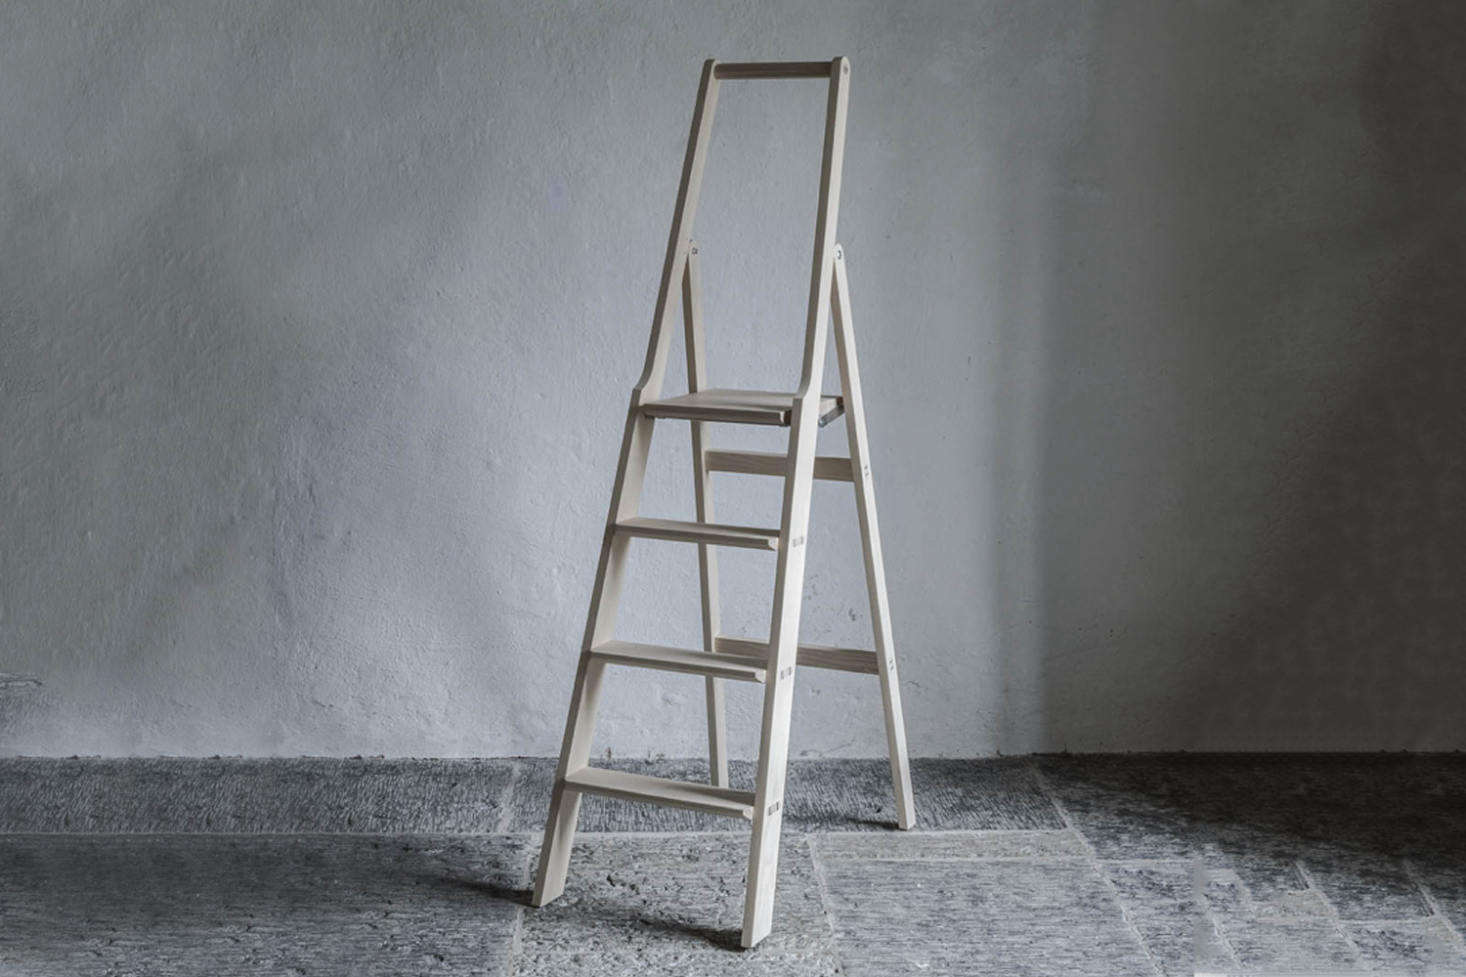 For the true aesthete, the Step Up Ladderfrom Olby Design in Sweden is really designed for indoor use alone and is made to be hung on the wall when not in use. Contact Olby Design for price and ordering information. For similar, albeit smaller, wood step ladders see our post Easy Pieces: Step Stools and Ladders.